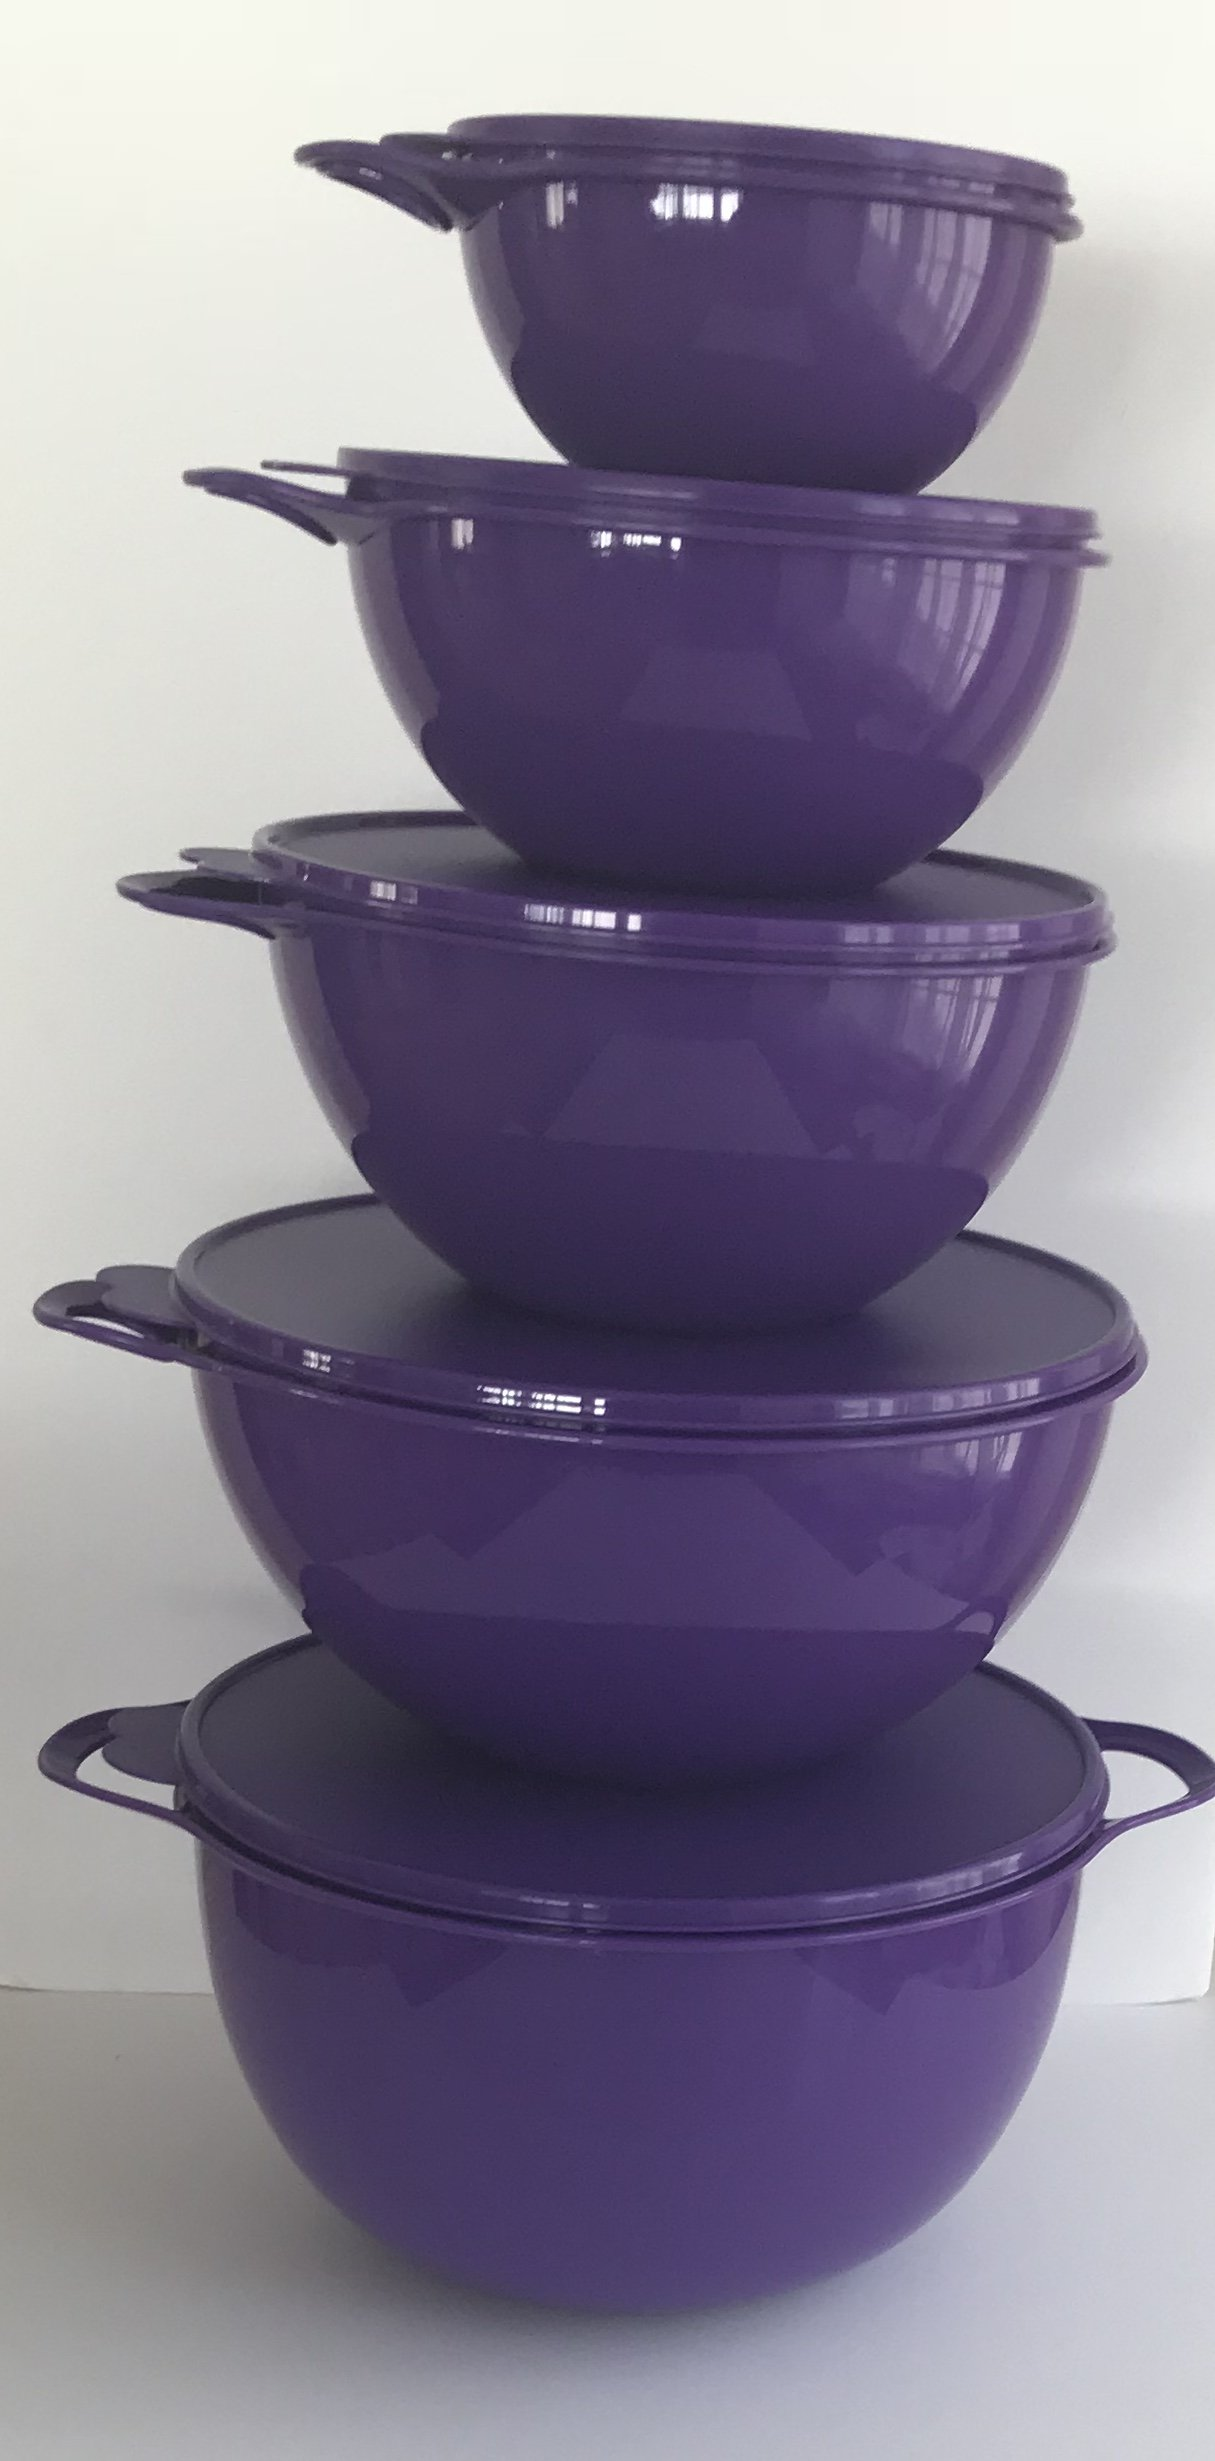 Tupperware Lot 5 Thatsa Mixing Bowl Set Rare 2,6,12,32,42 Cup